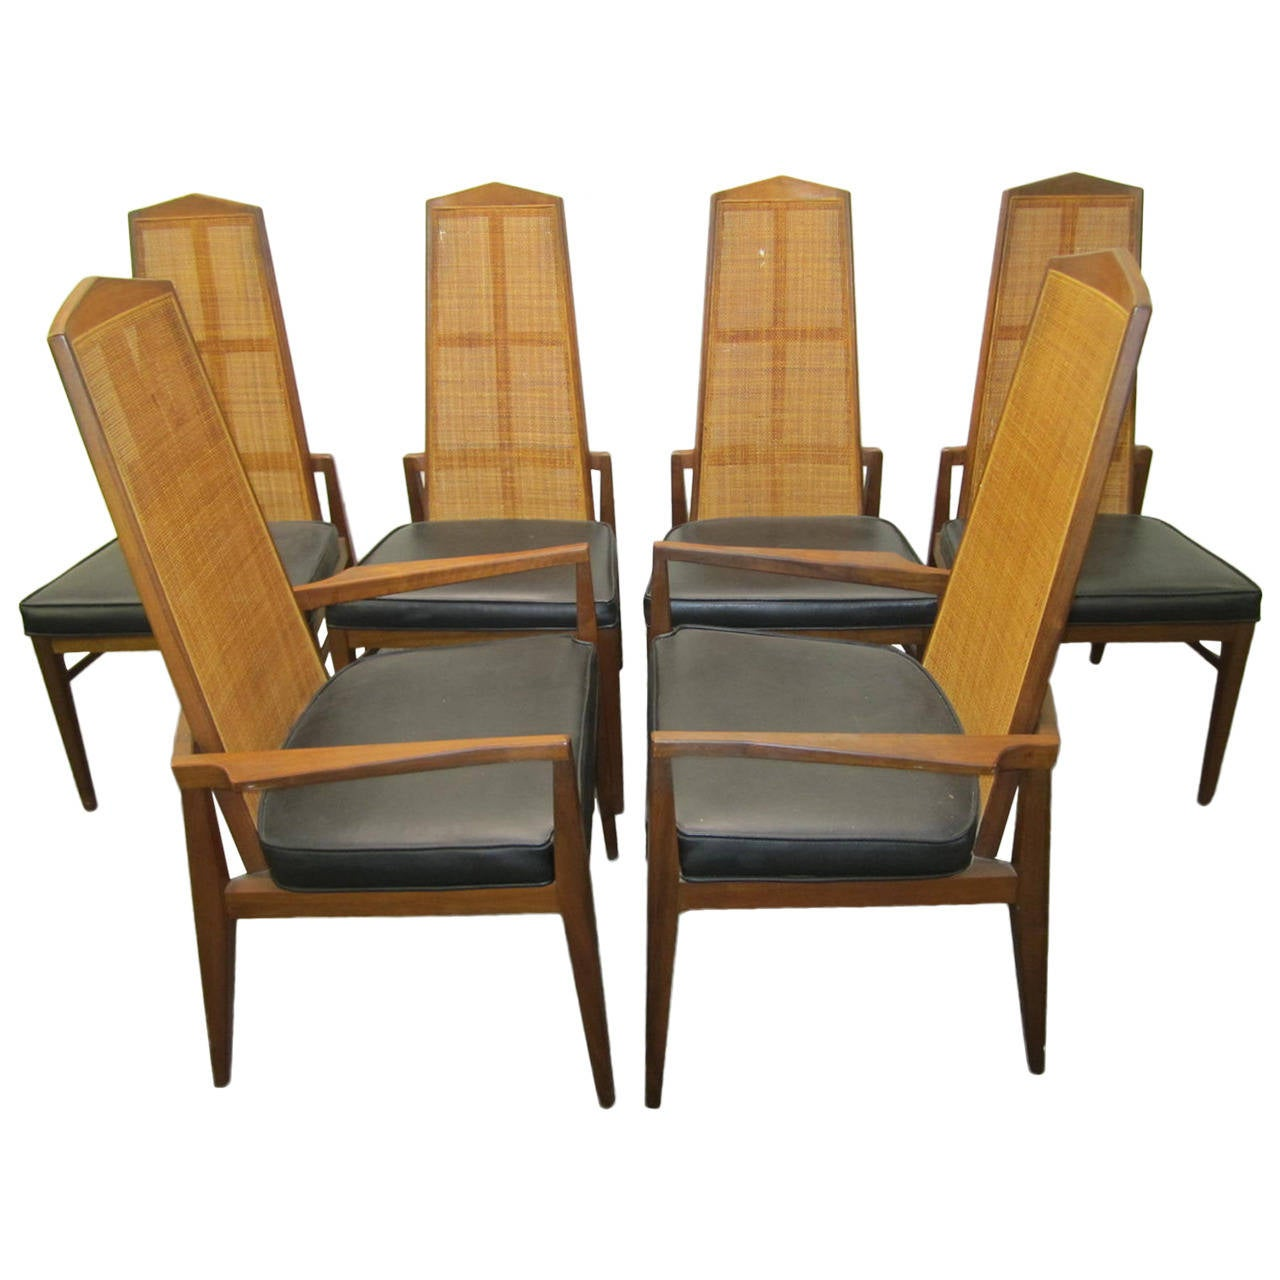 Six Walnut Foster And Mcdavid Cane Back Dining Chairs Mid Century Modern 1